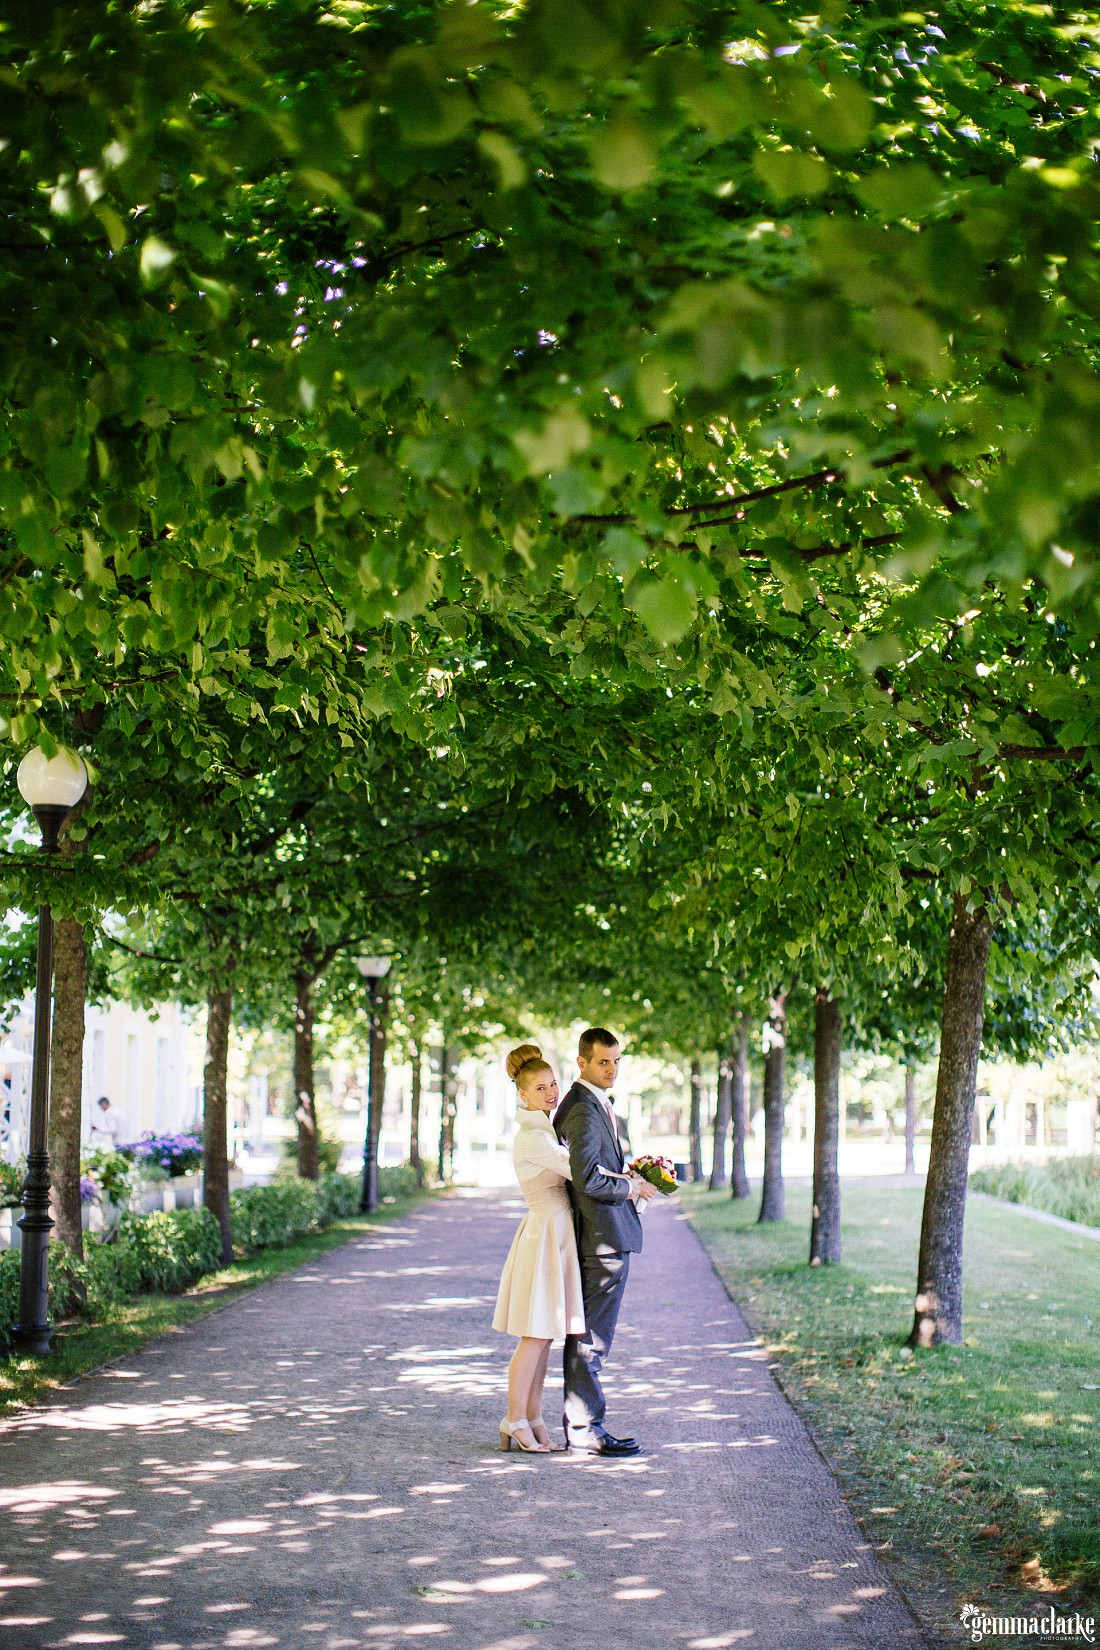 gemmaclarkephotography_elopement-in-europe_small-wedding-tallinn_teele-and-kristen_0044